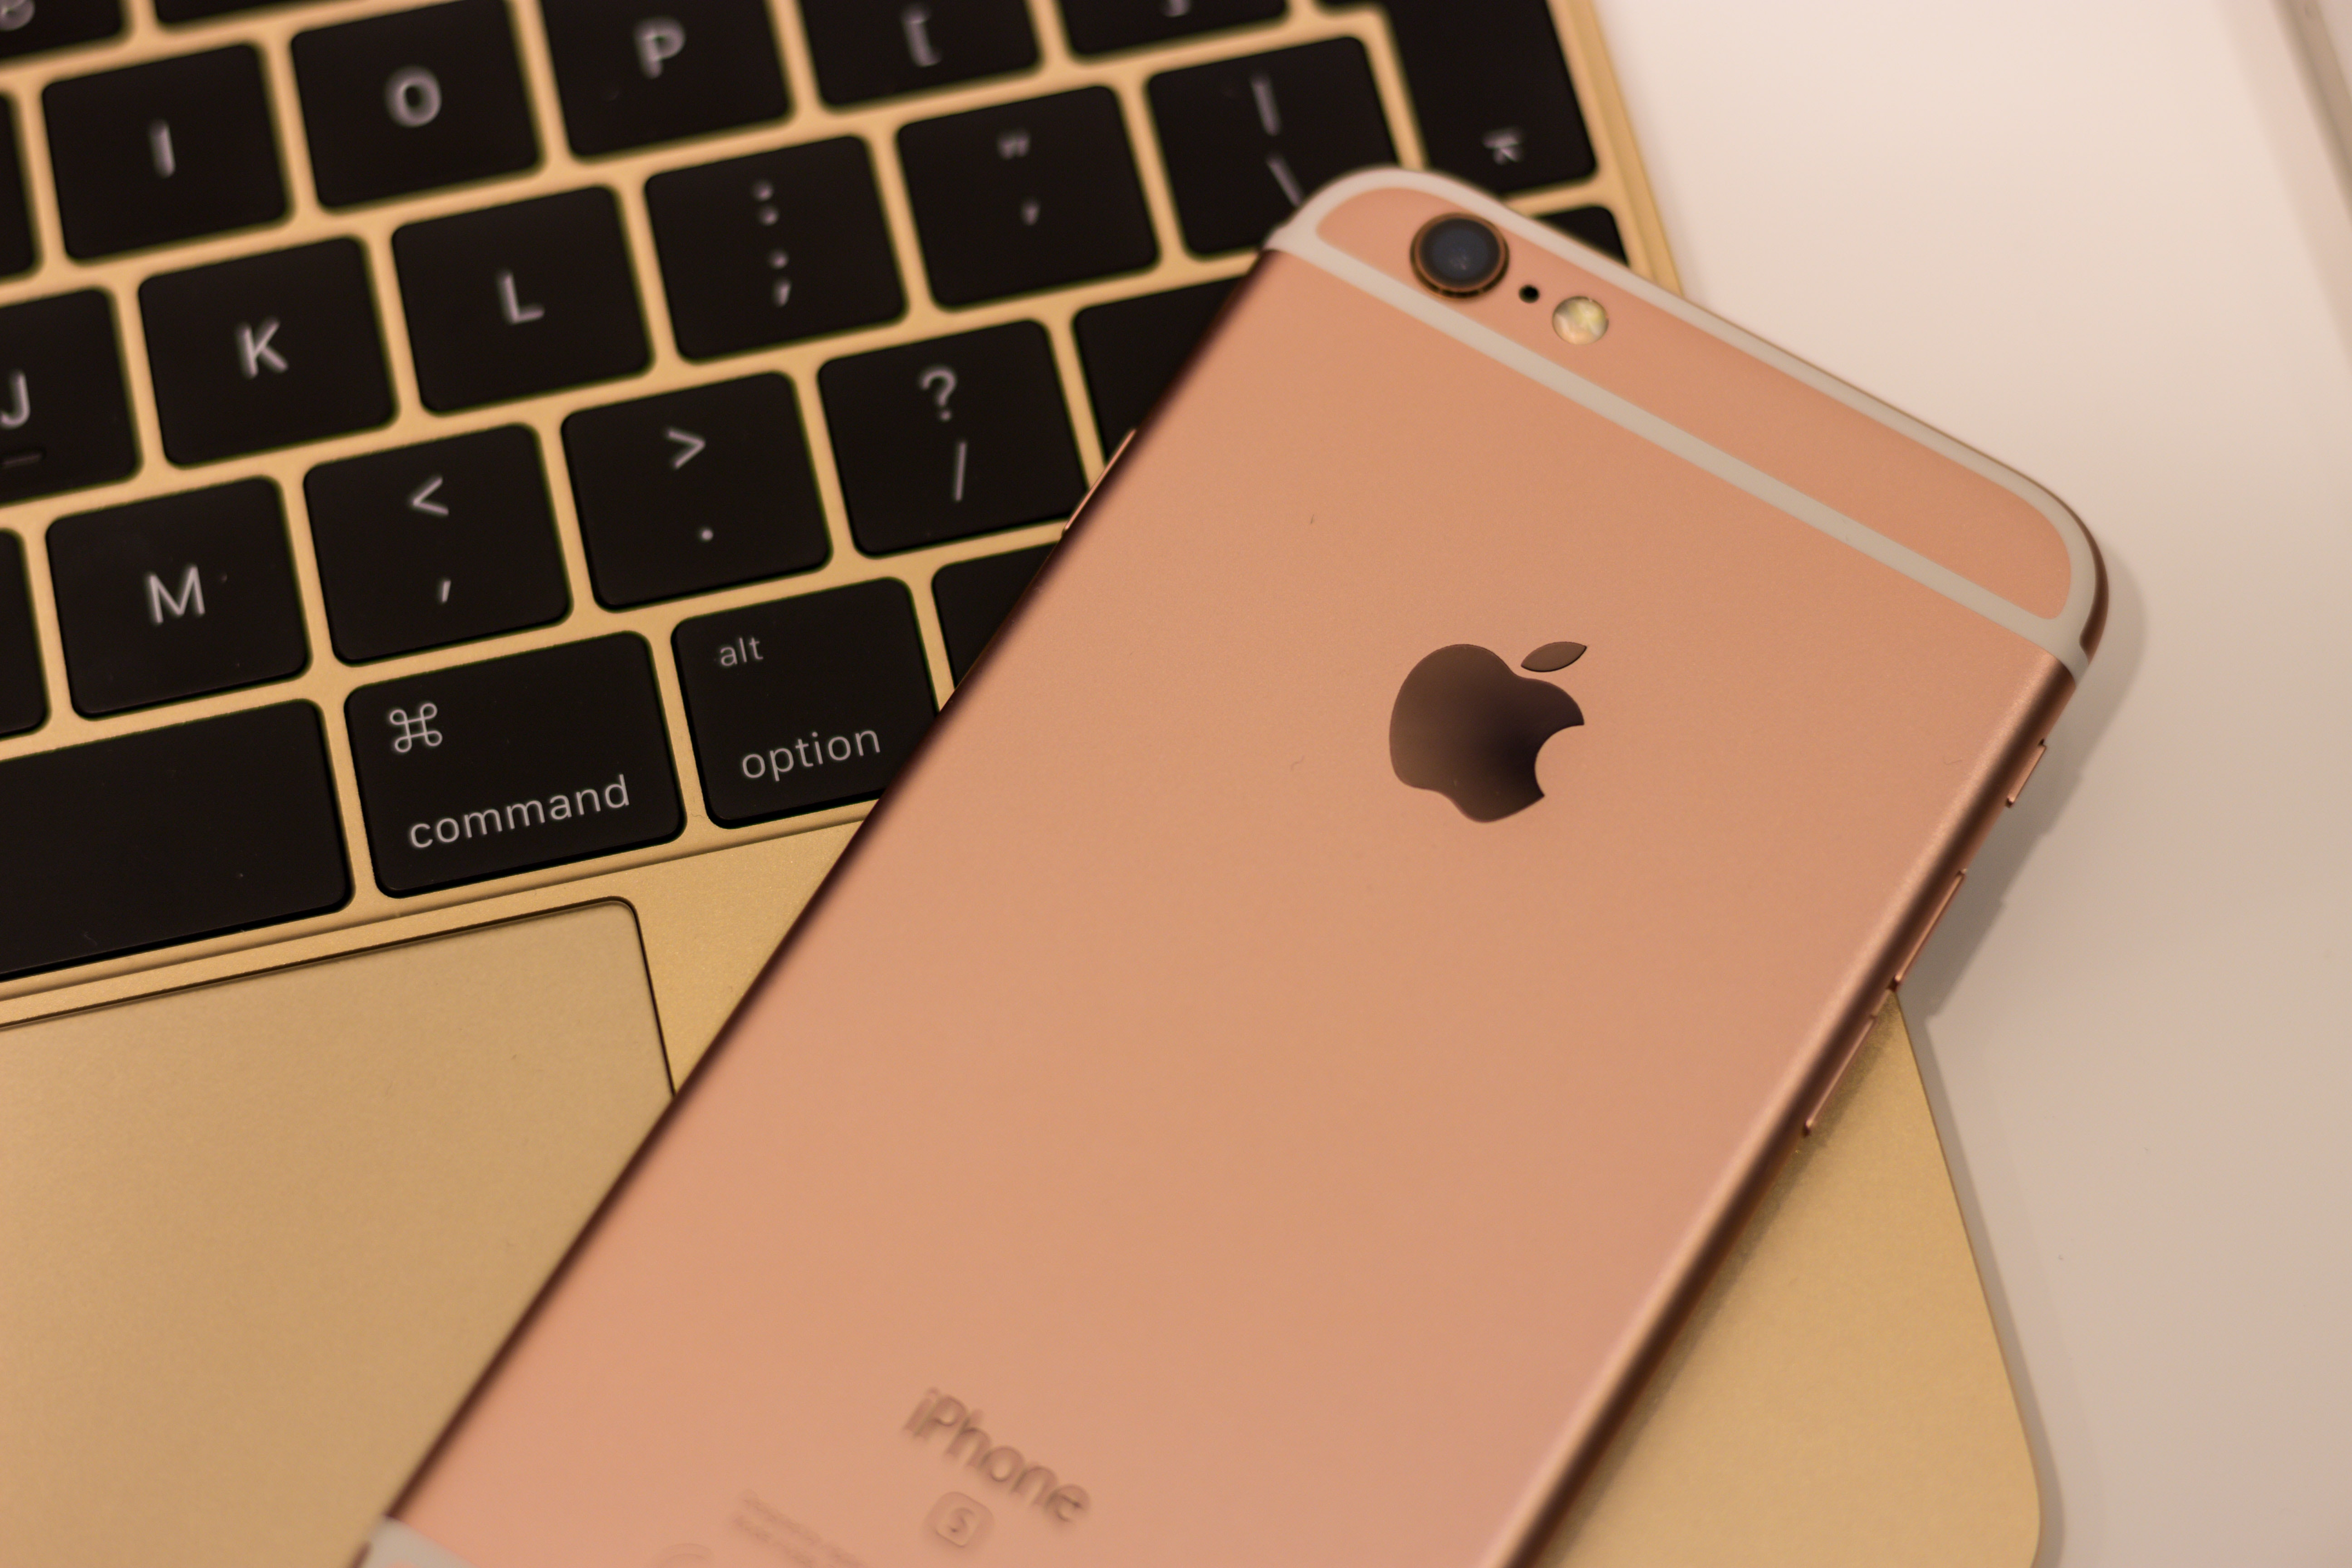 Rose gold iphone 6s photo